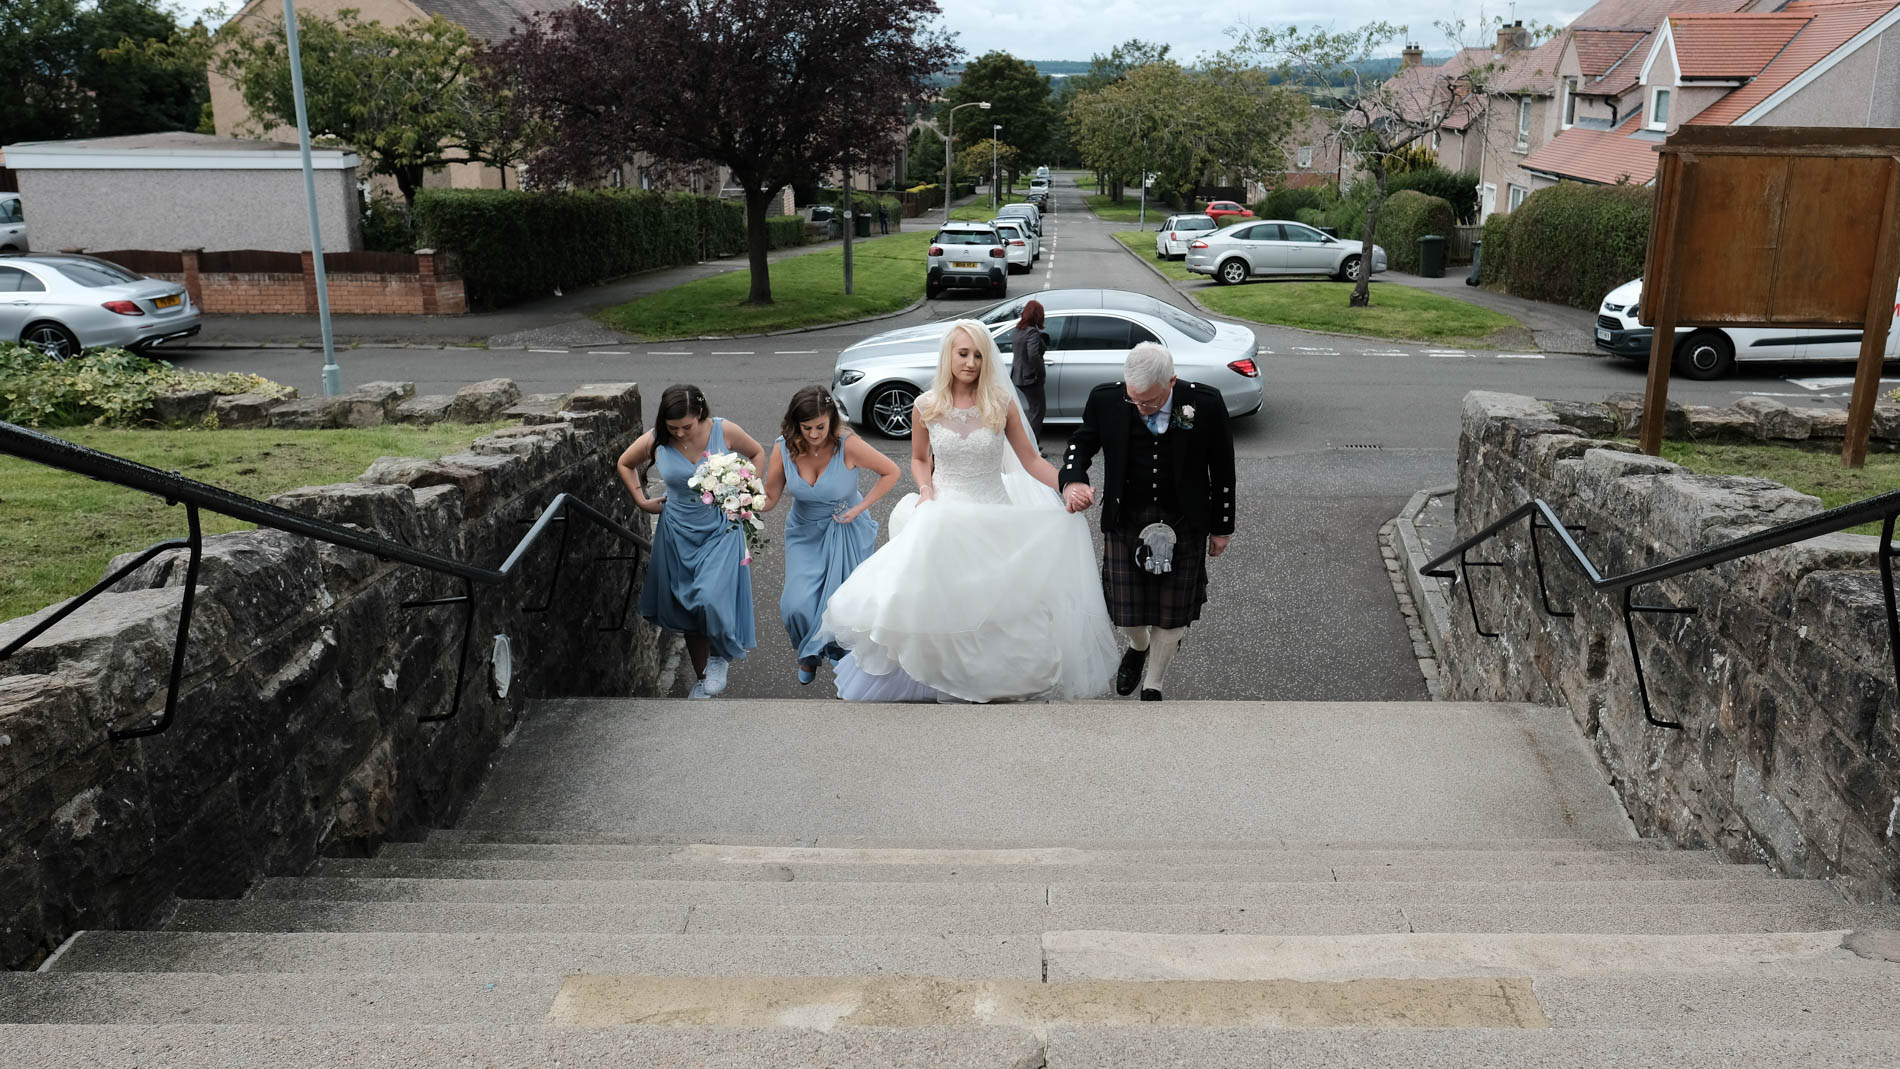 Colour photograph of the bridal party and father of the bride arriving at her wedding at St. Andrew's, Clermiston, Edinburgh